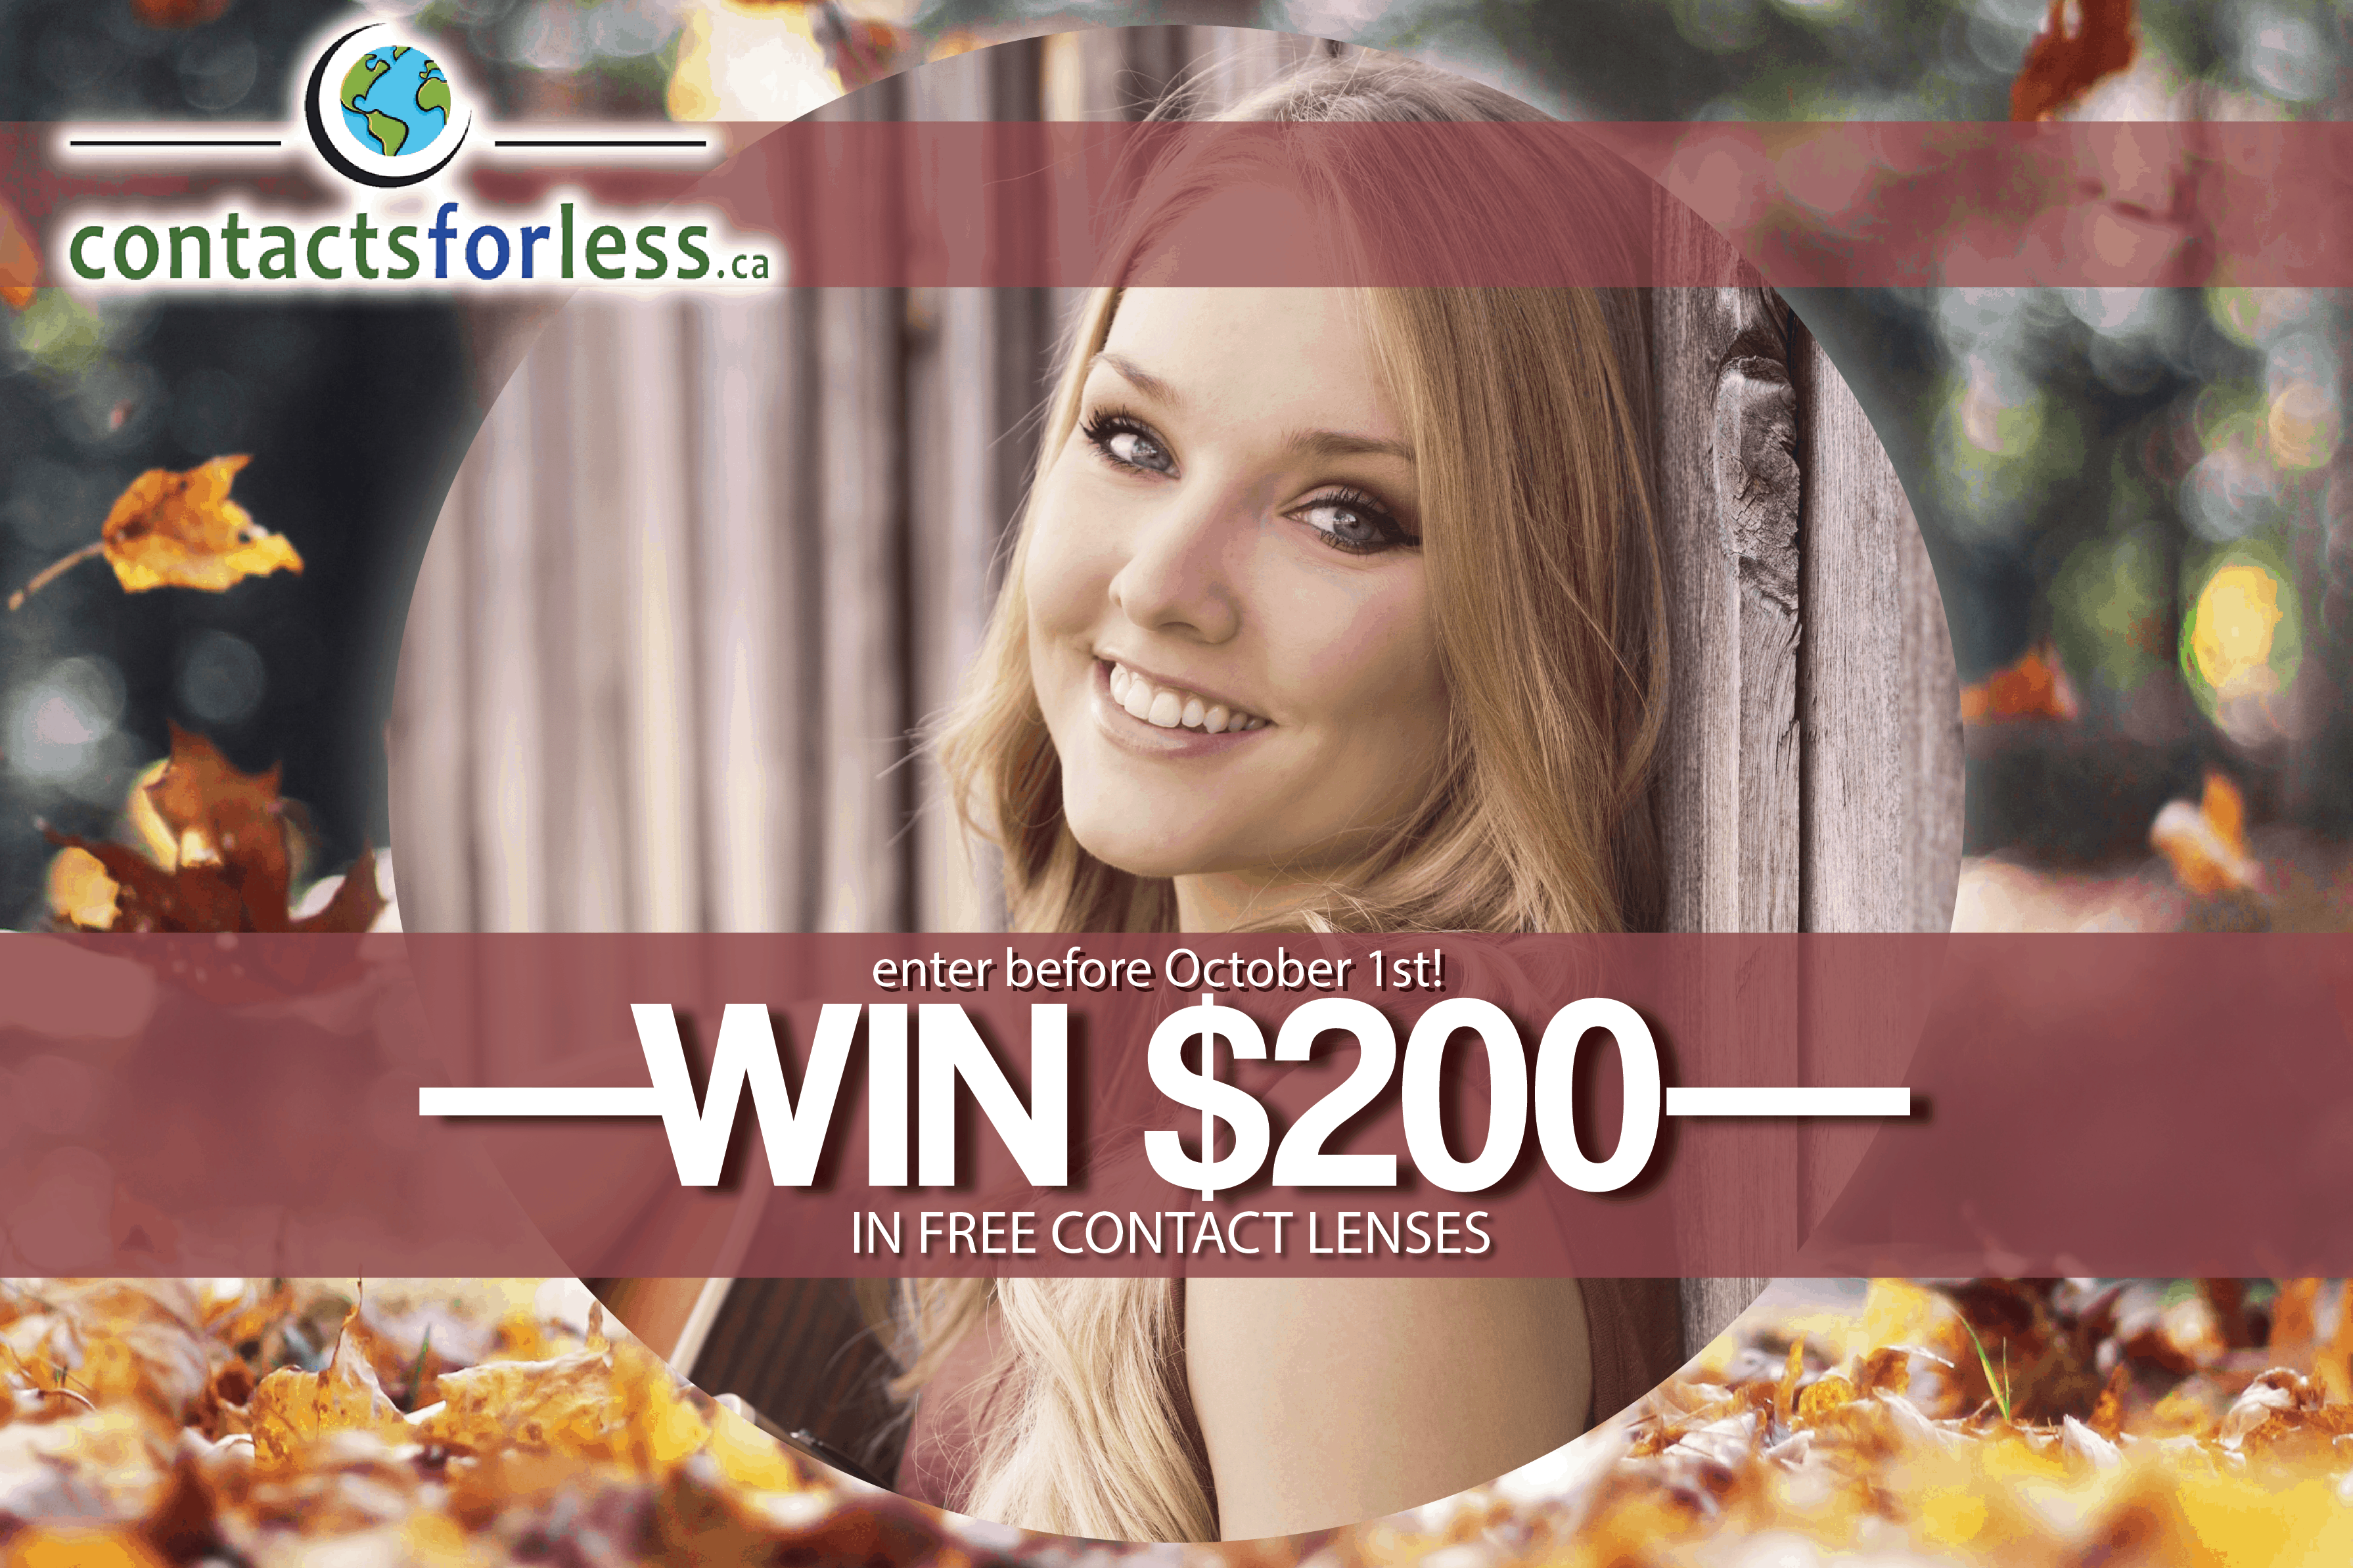 win $200 in contact lenses